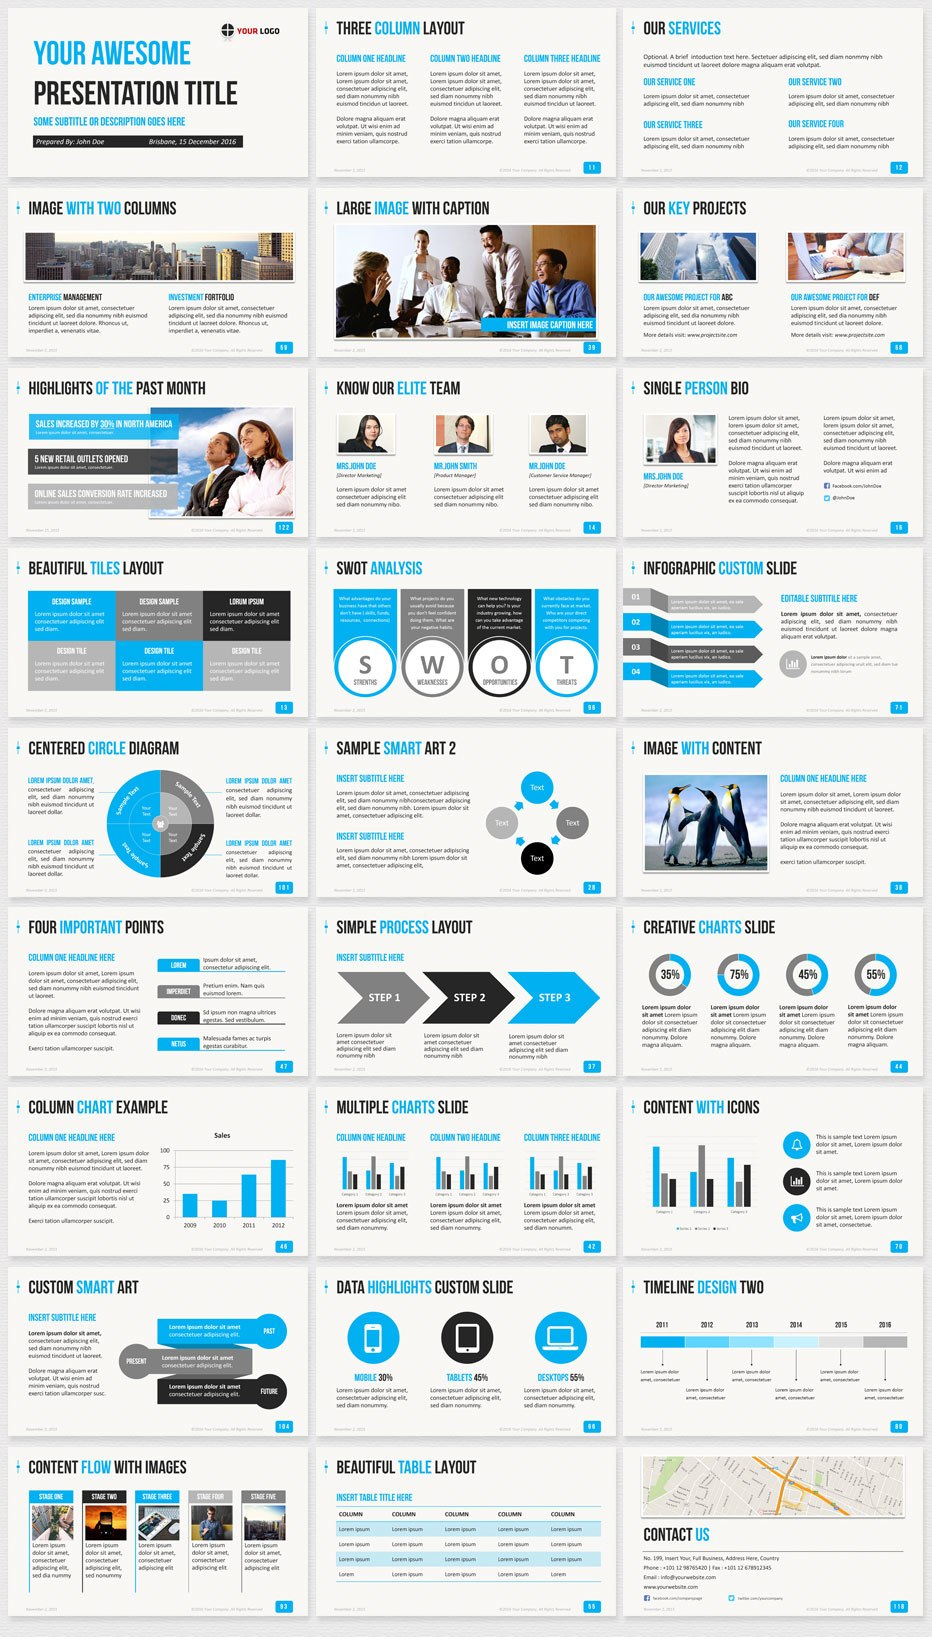 Ultimate Professional Business Powerpoint Template   Clean Slides Intended For Powerpoint Photo Slideshow Template